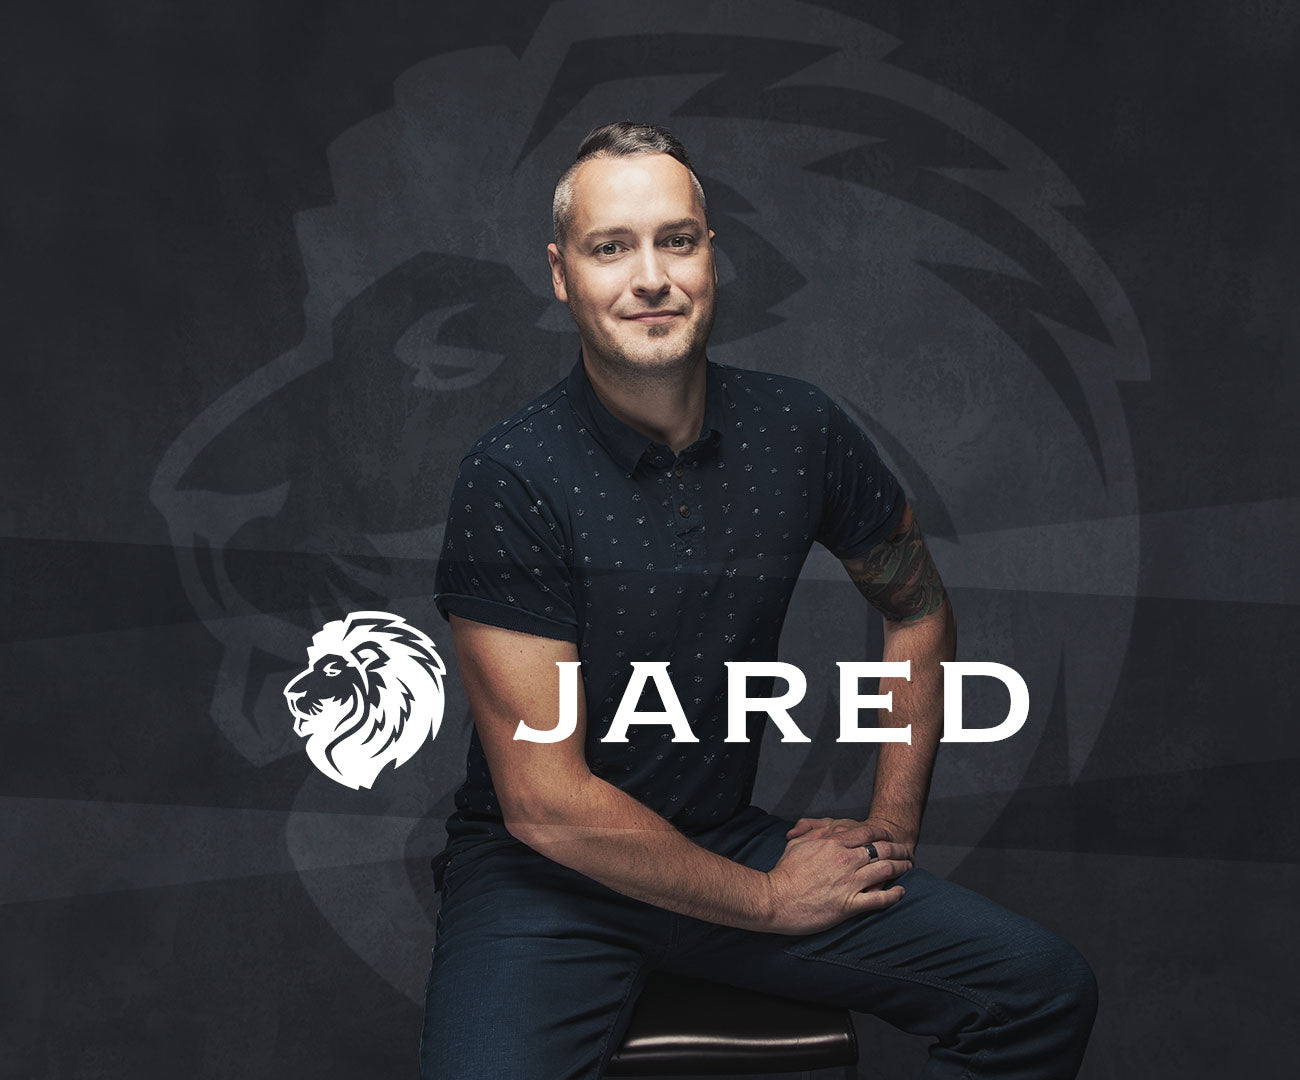 Get To Know Jared